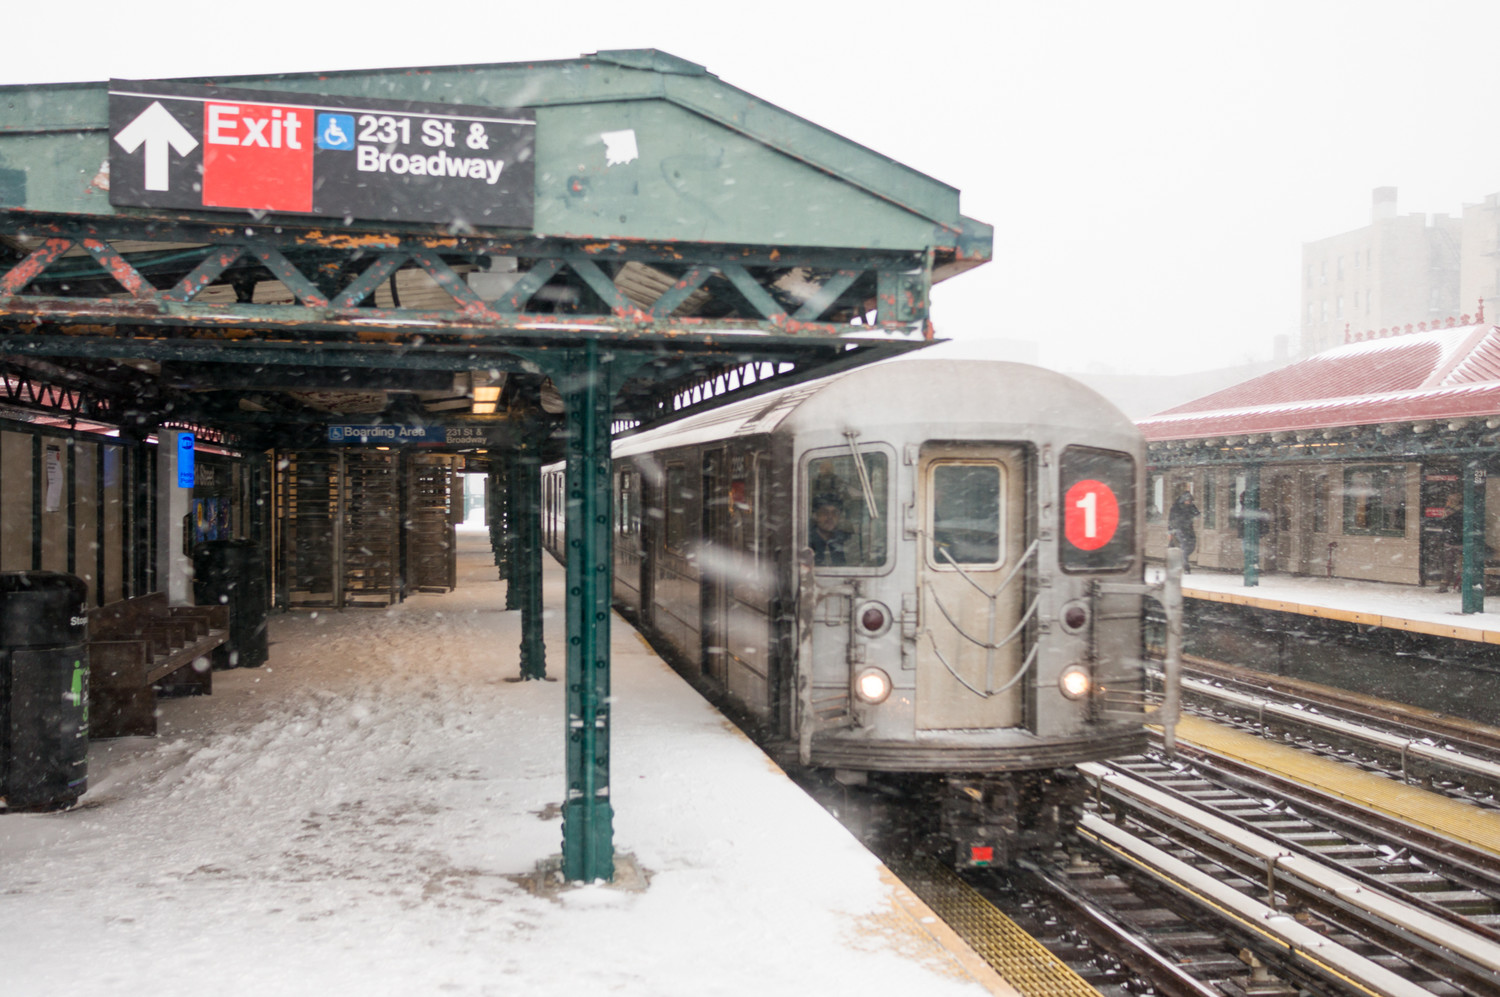 A 1 train pulls into the station at 231st Street during winter storm Grayson.